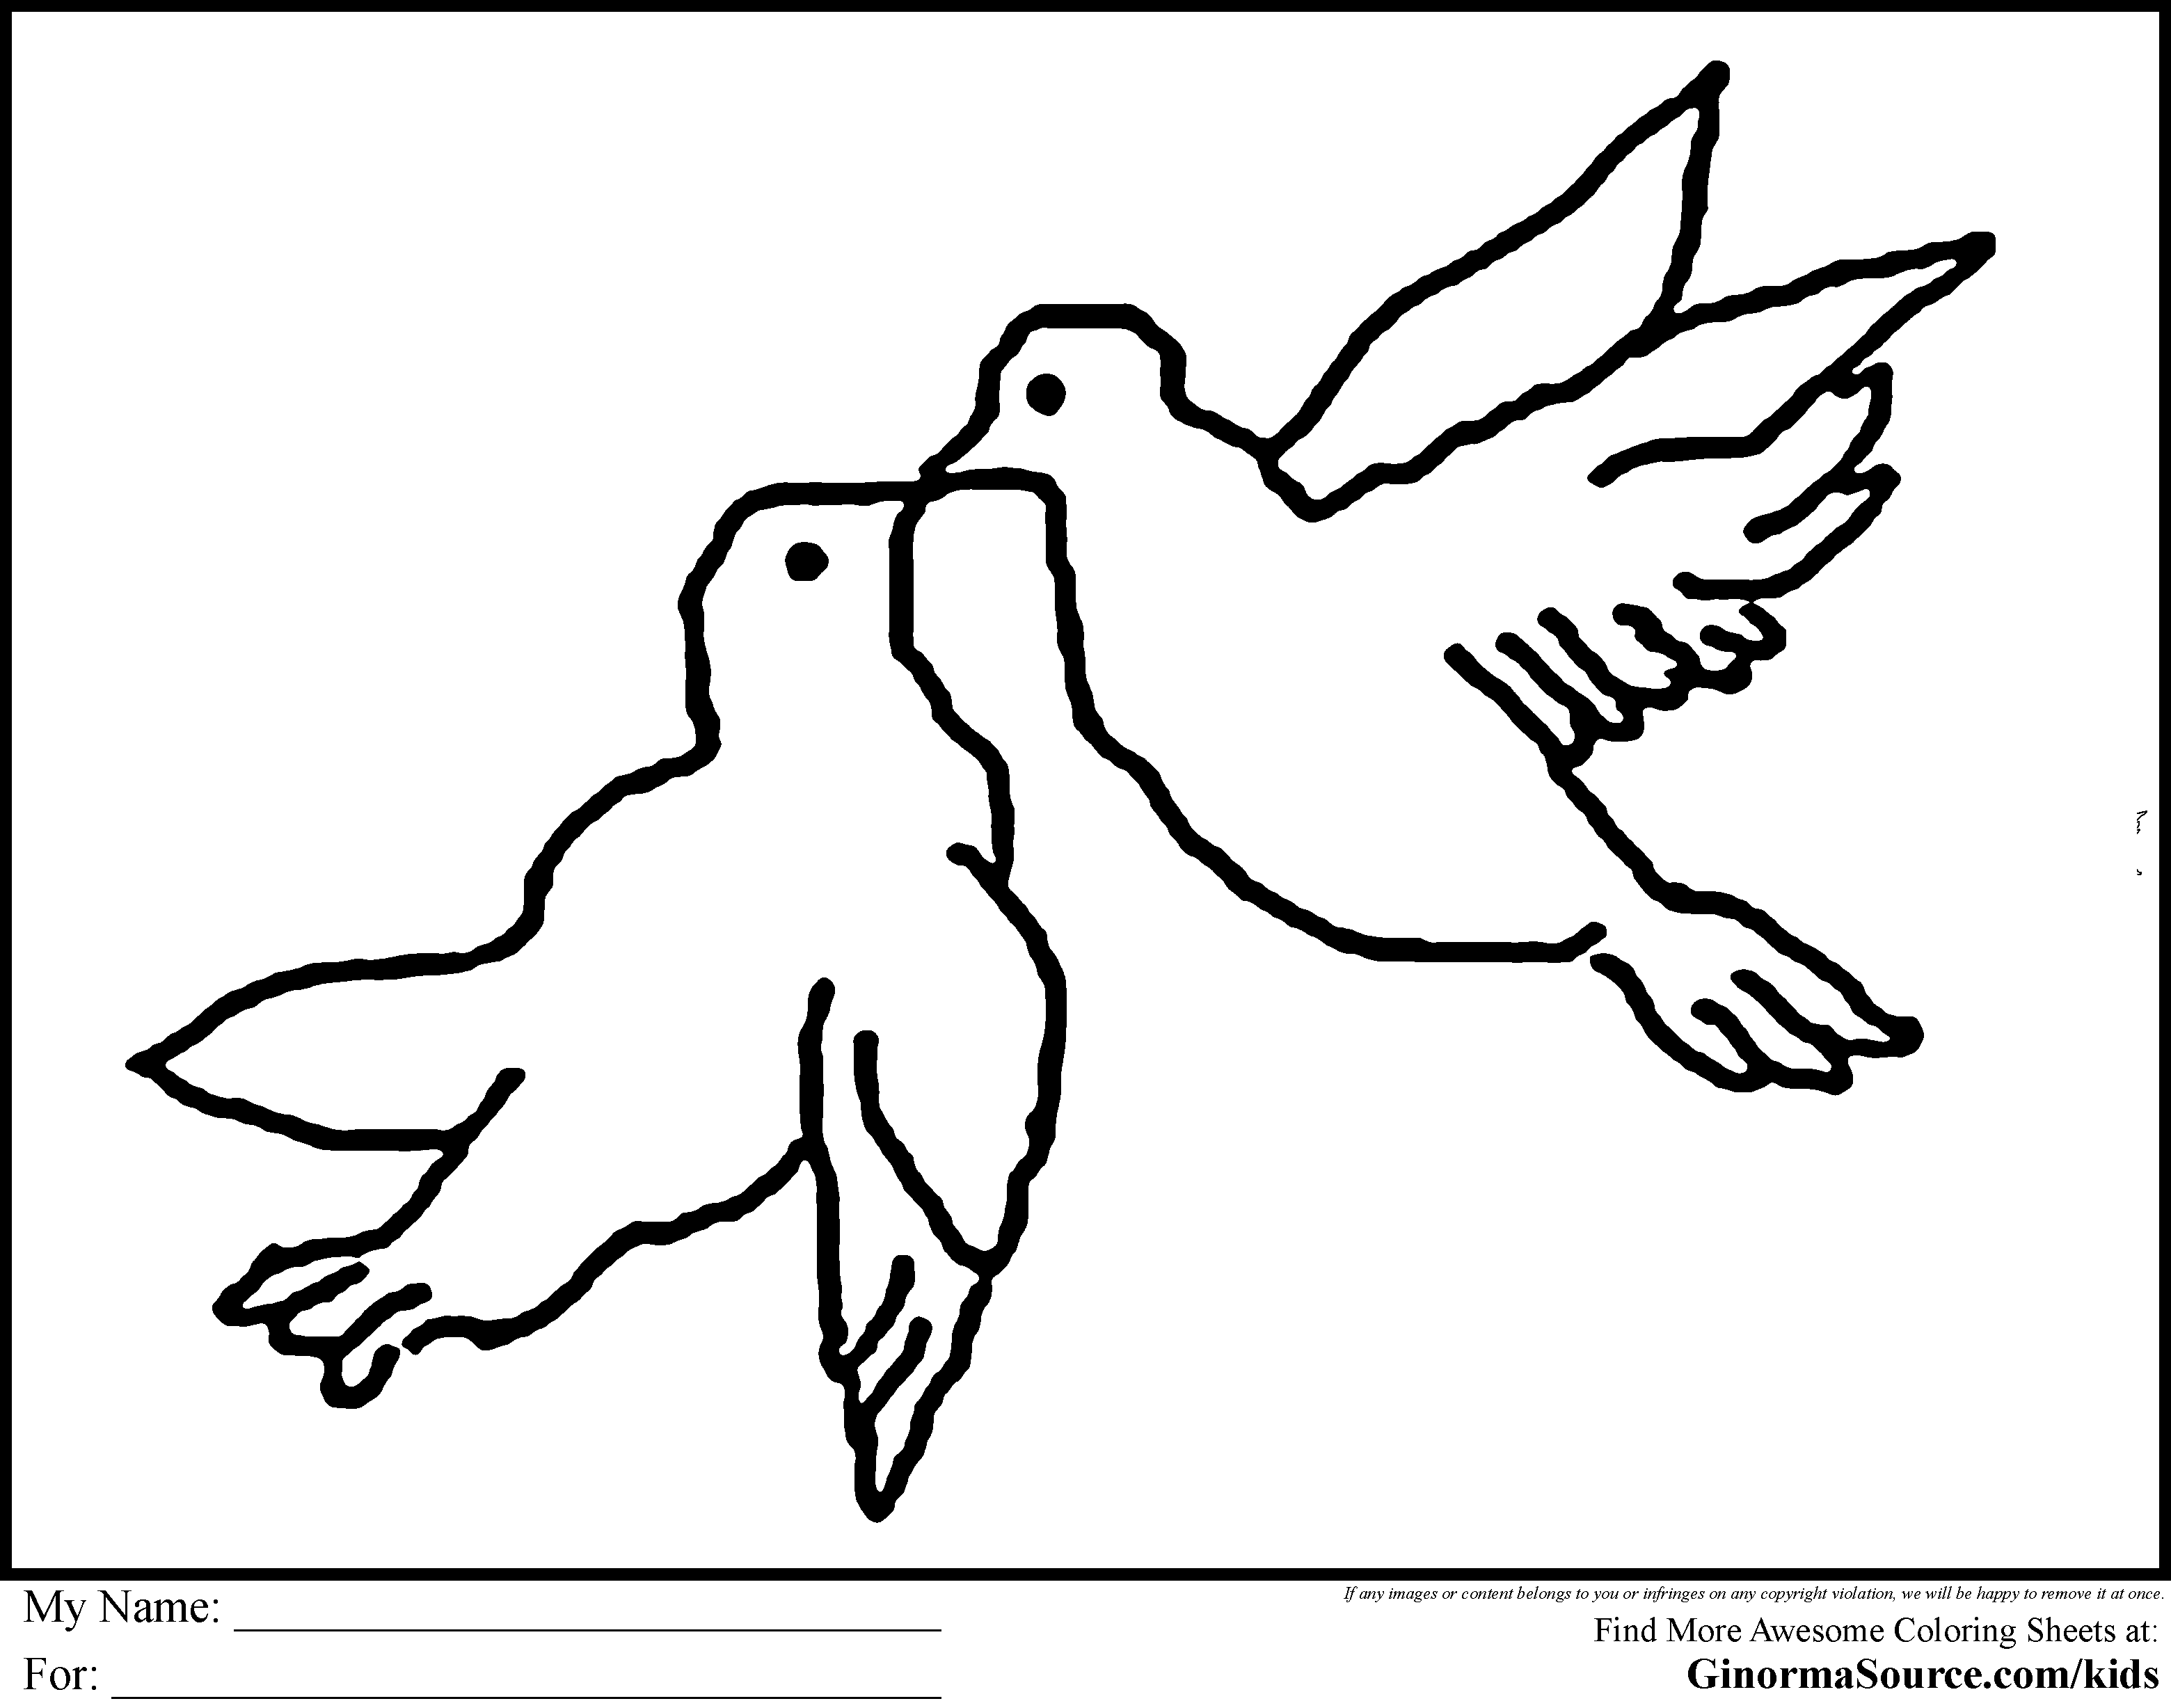 doves coloring pages dove coloring pages download and print dove coloring pages coloring pages doves